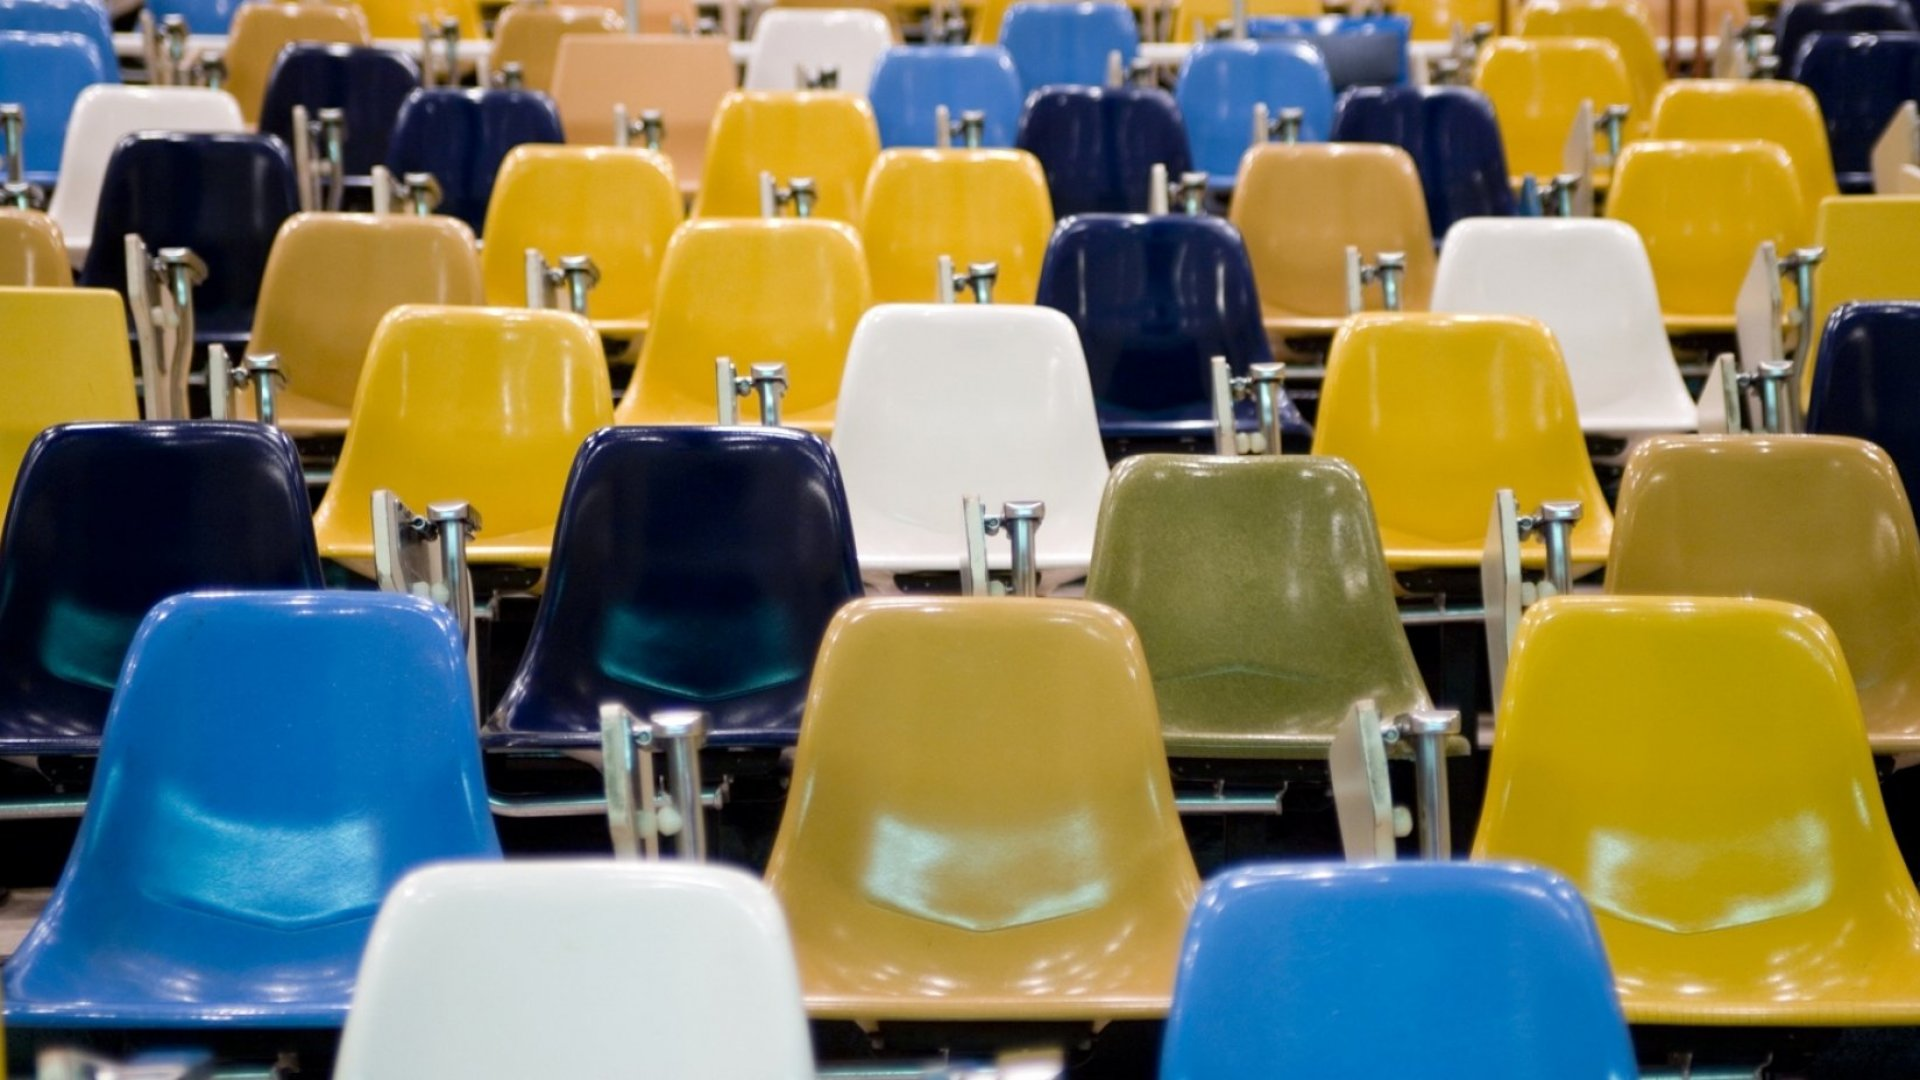 Why C+ Students May Be the Best at Building A+ Companies